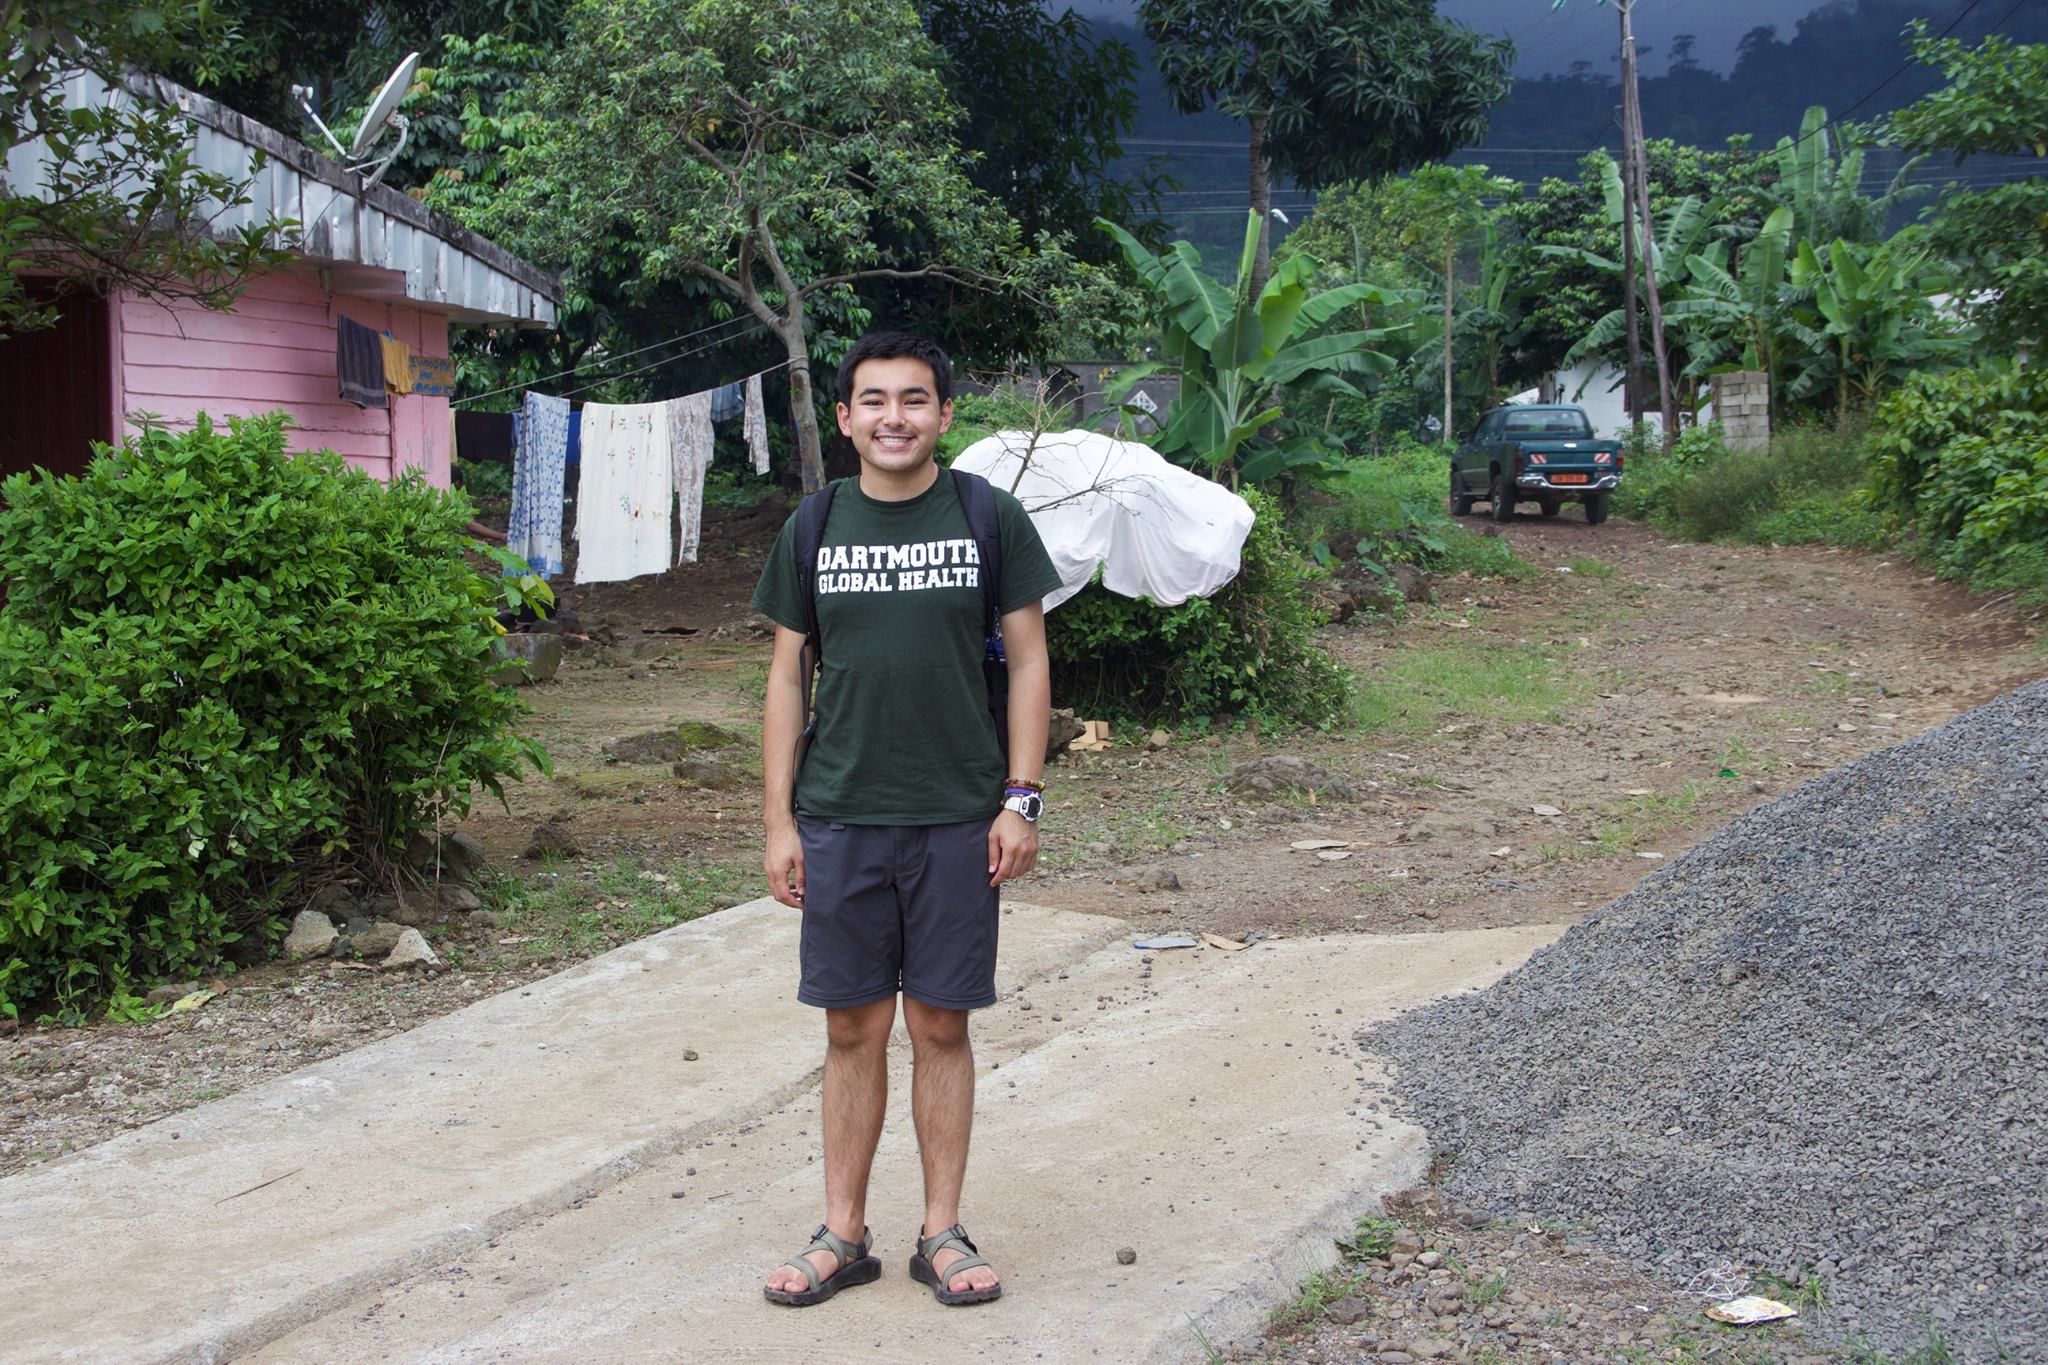 Dartmouth student in street of Cameroon village